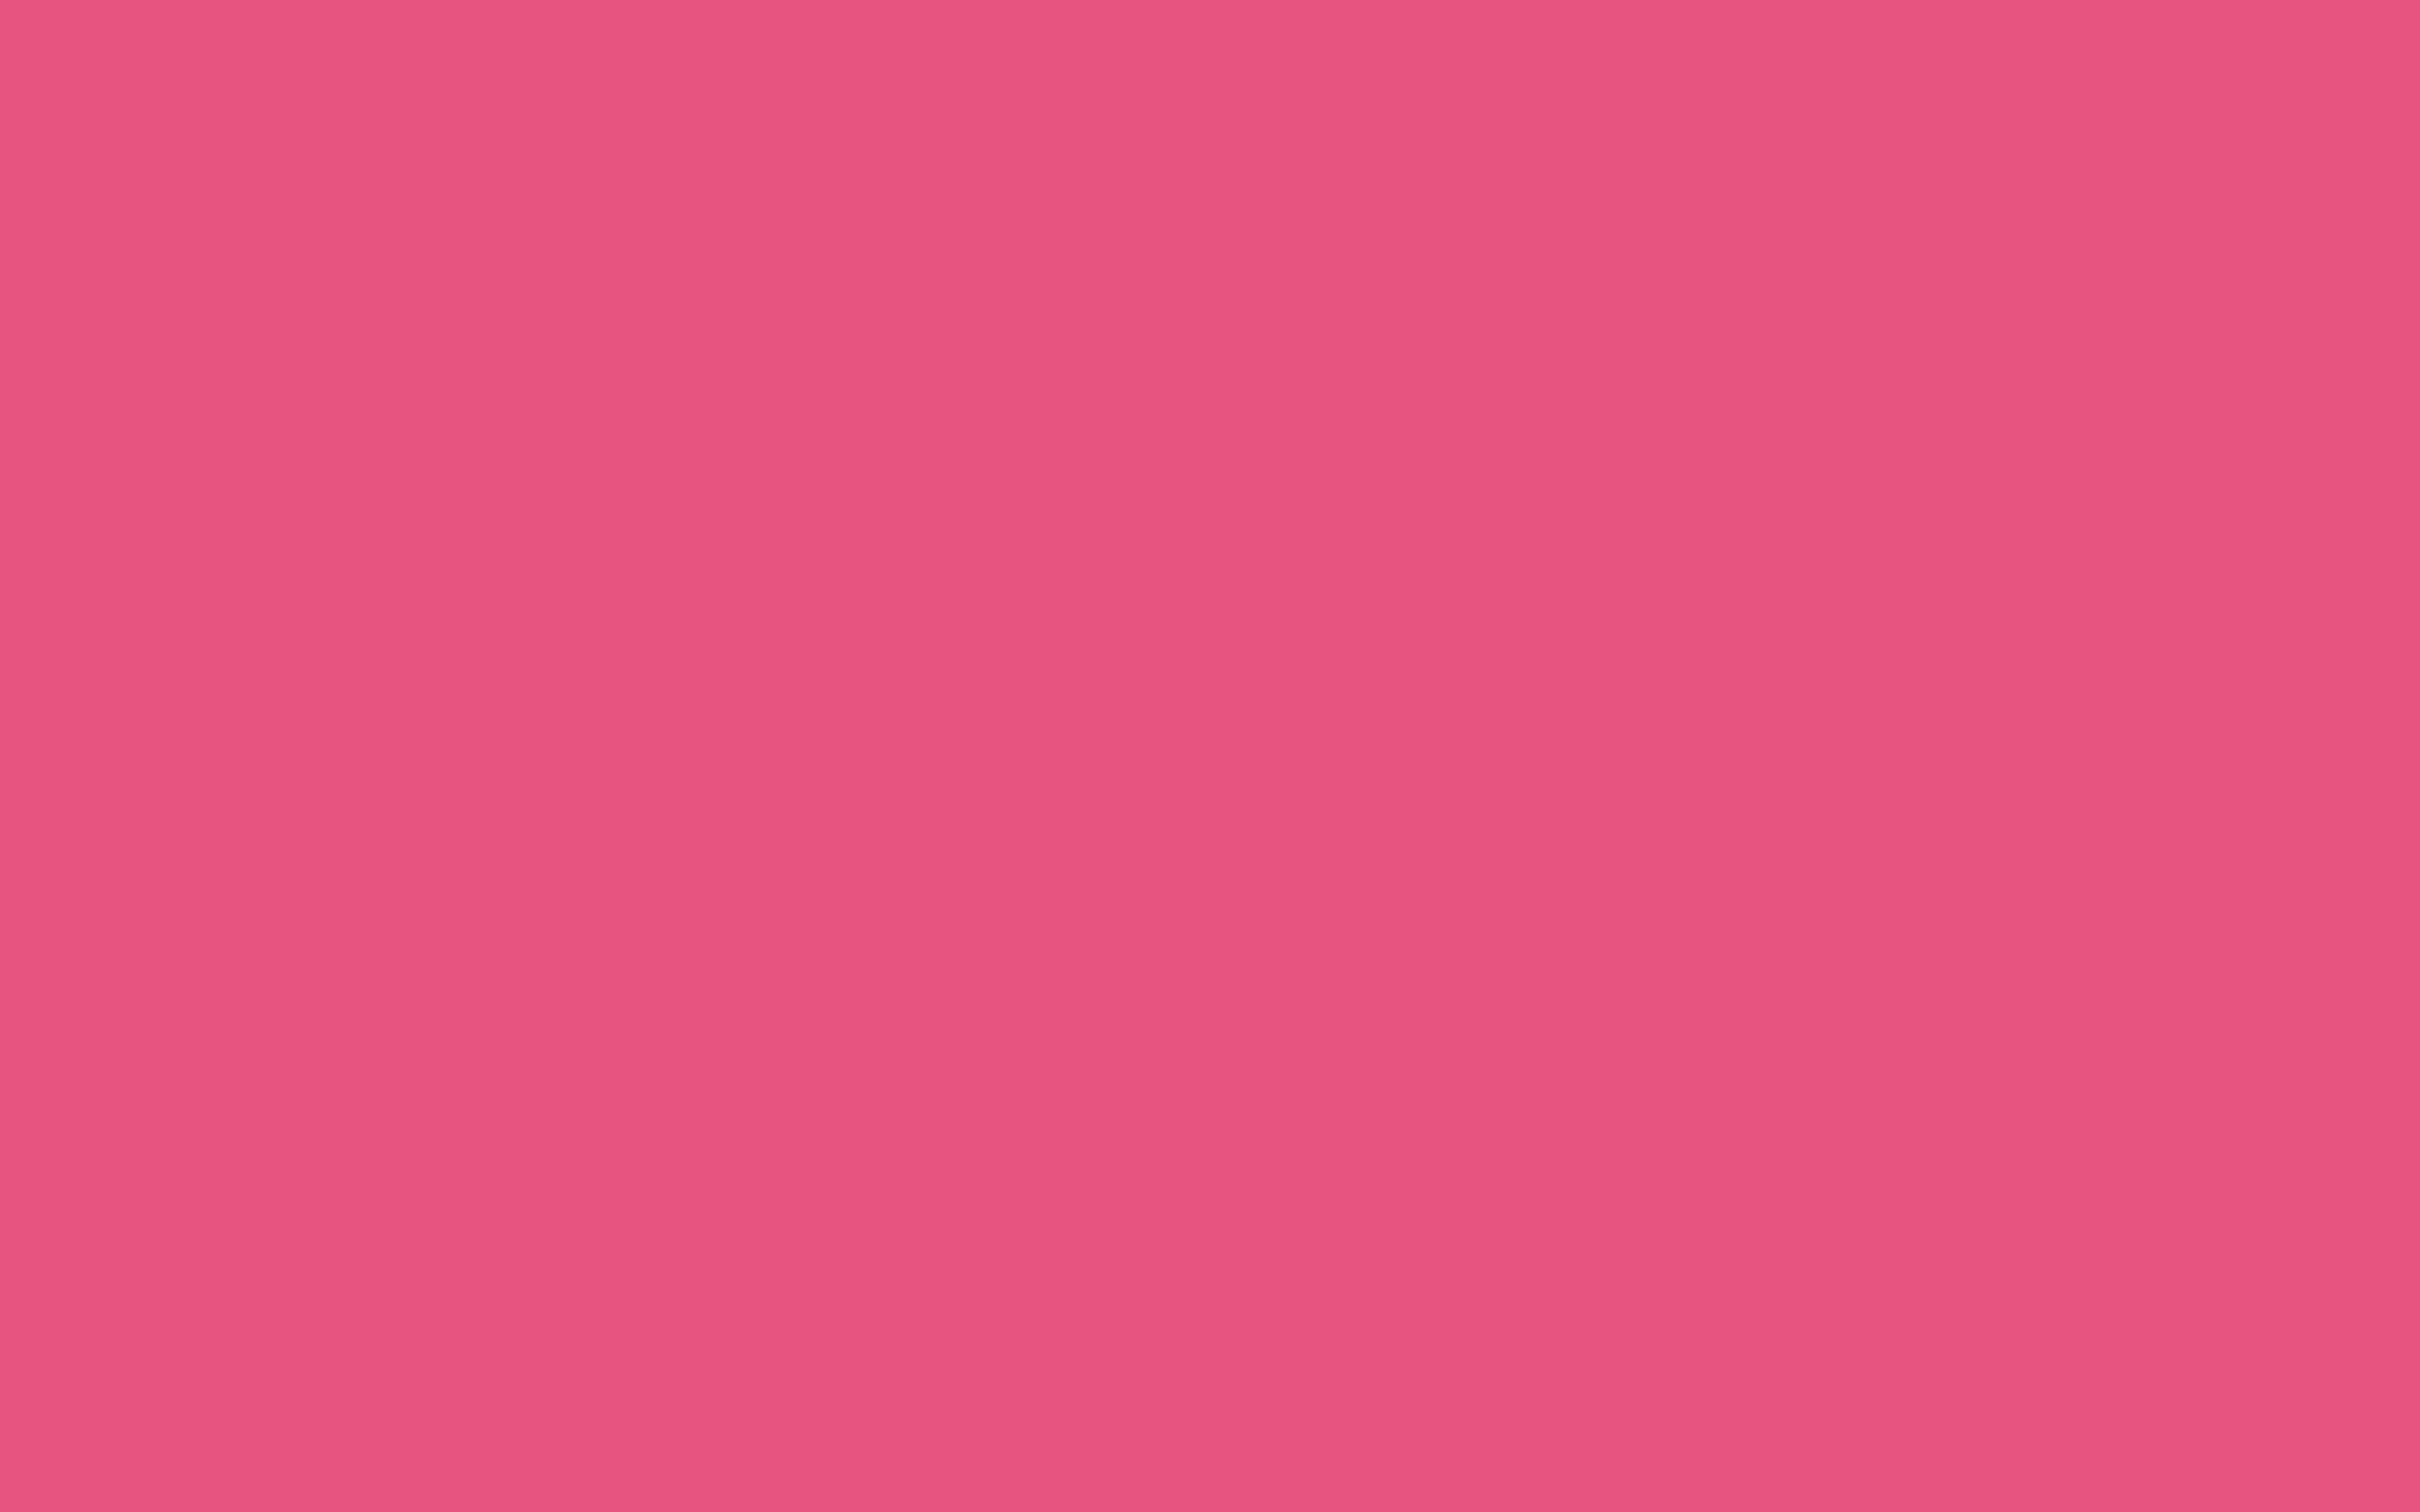 2560x1600 Dark Pink Solid Color Background